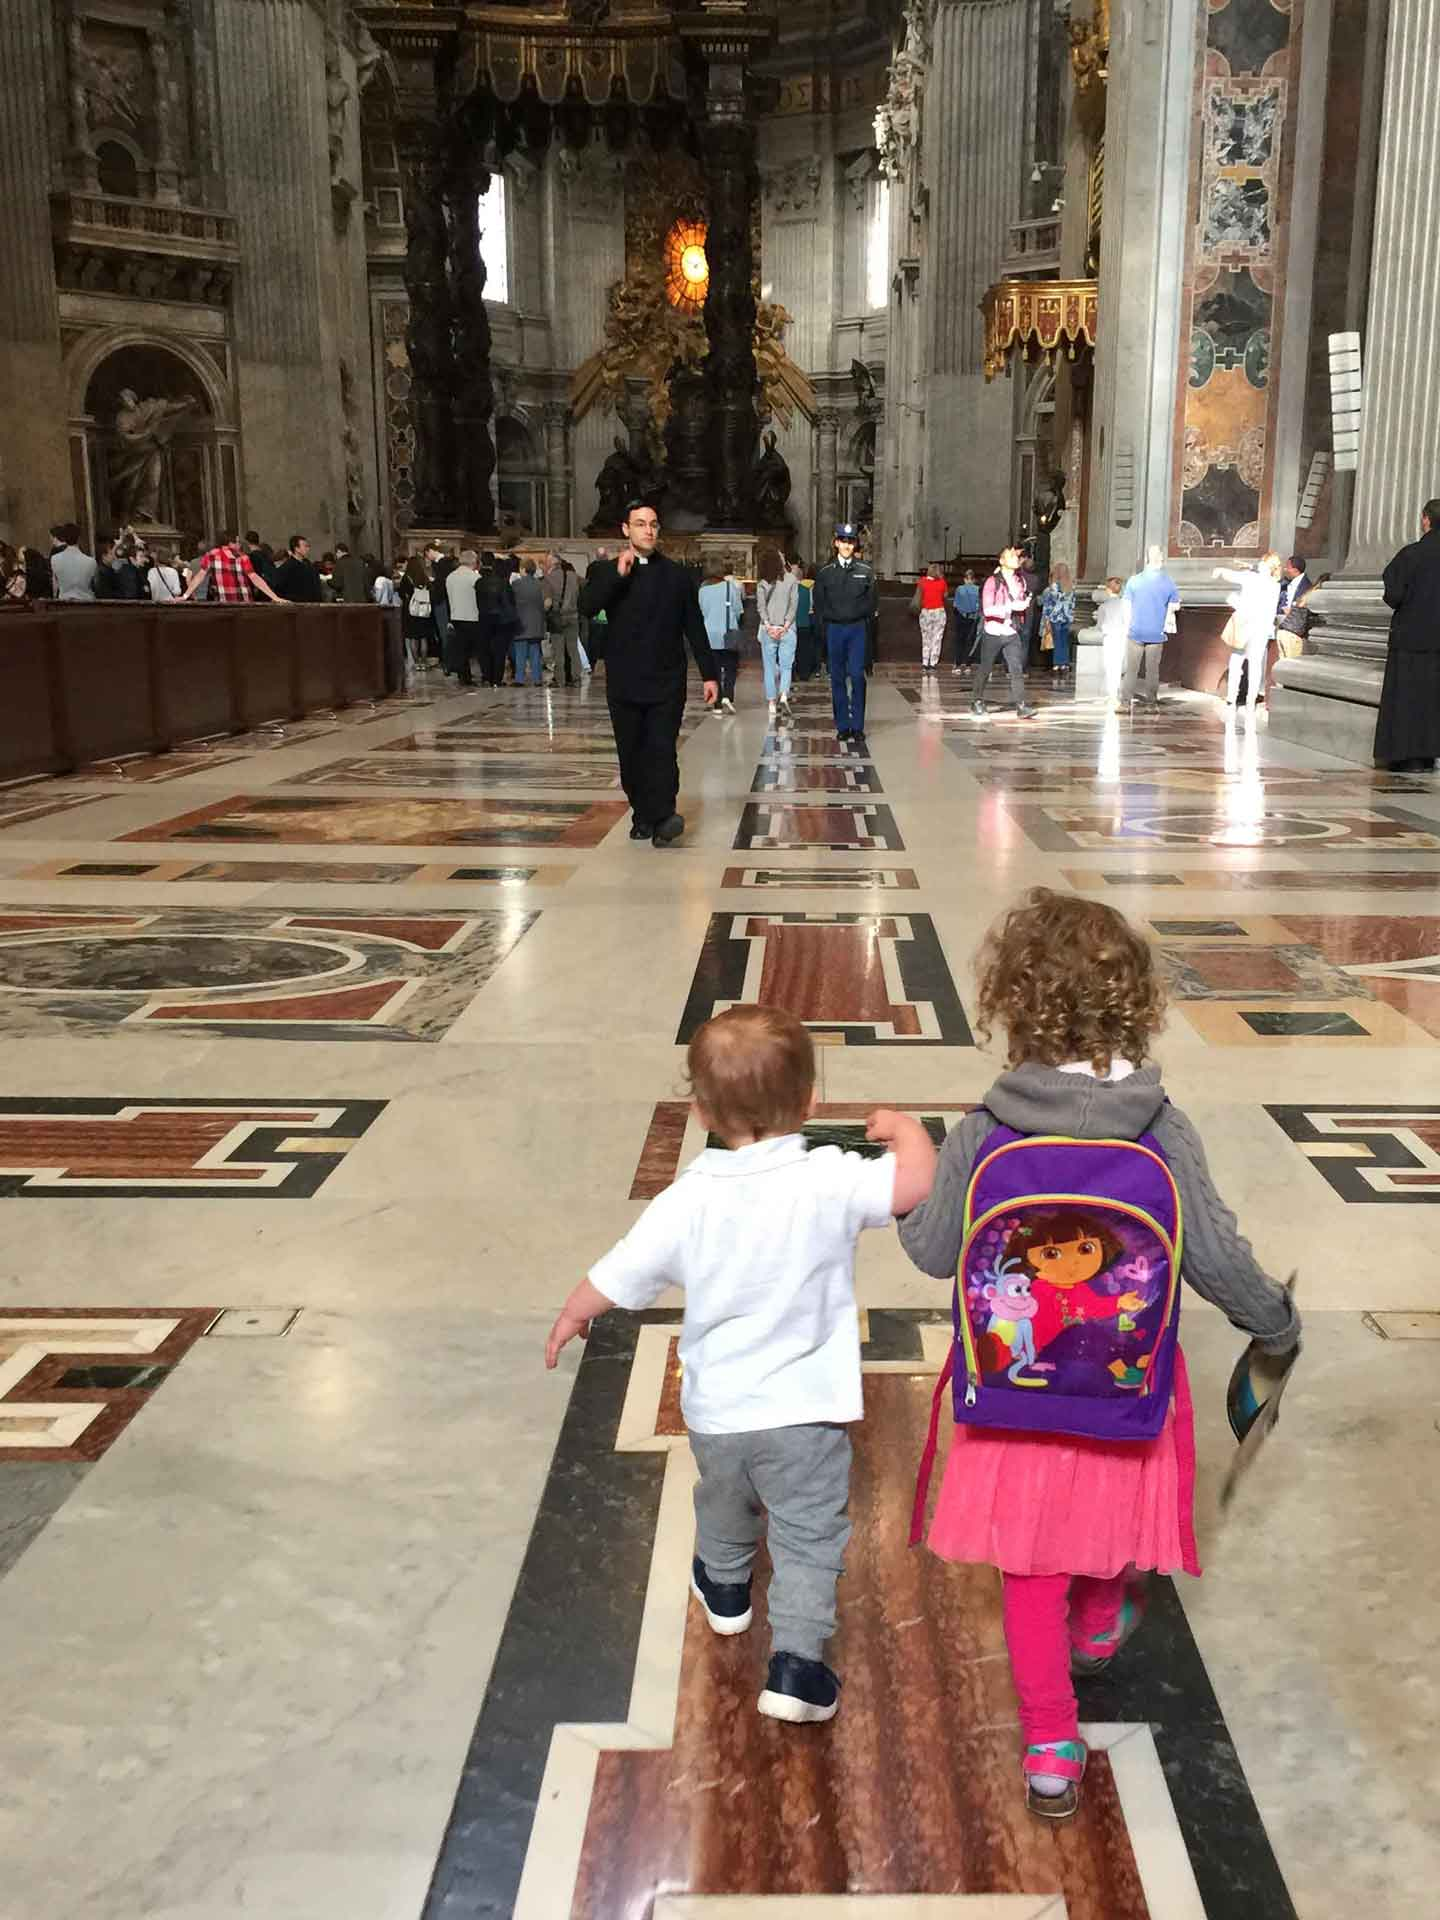 St Peters Basilica in Rome Italy with toddlers